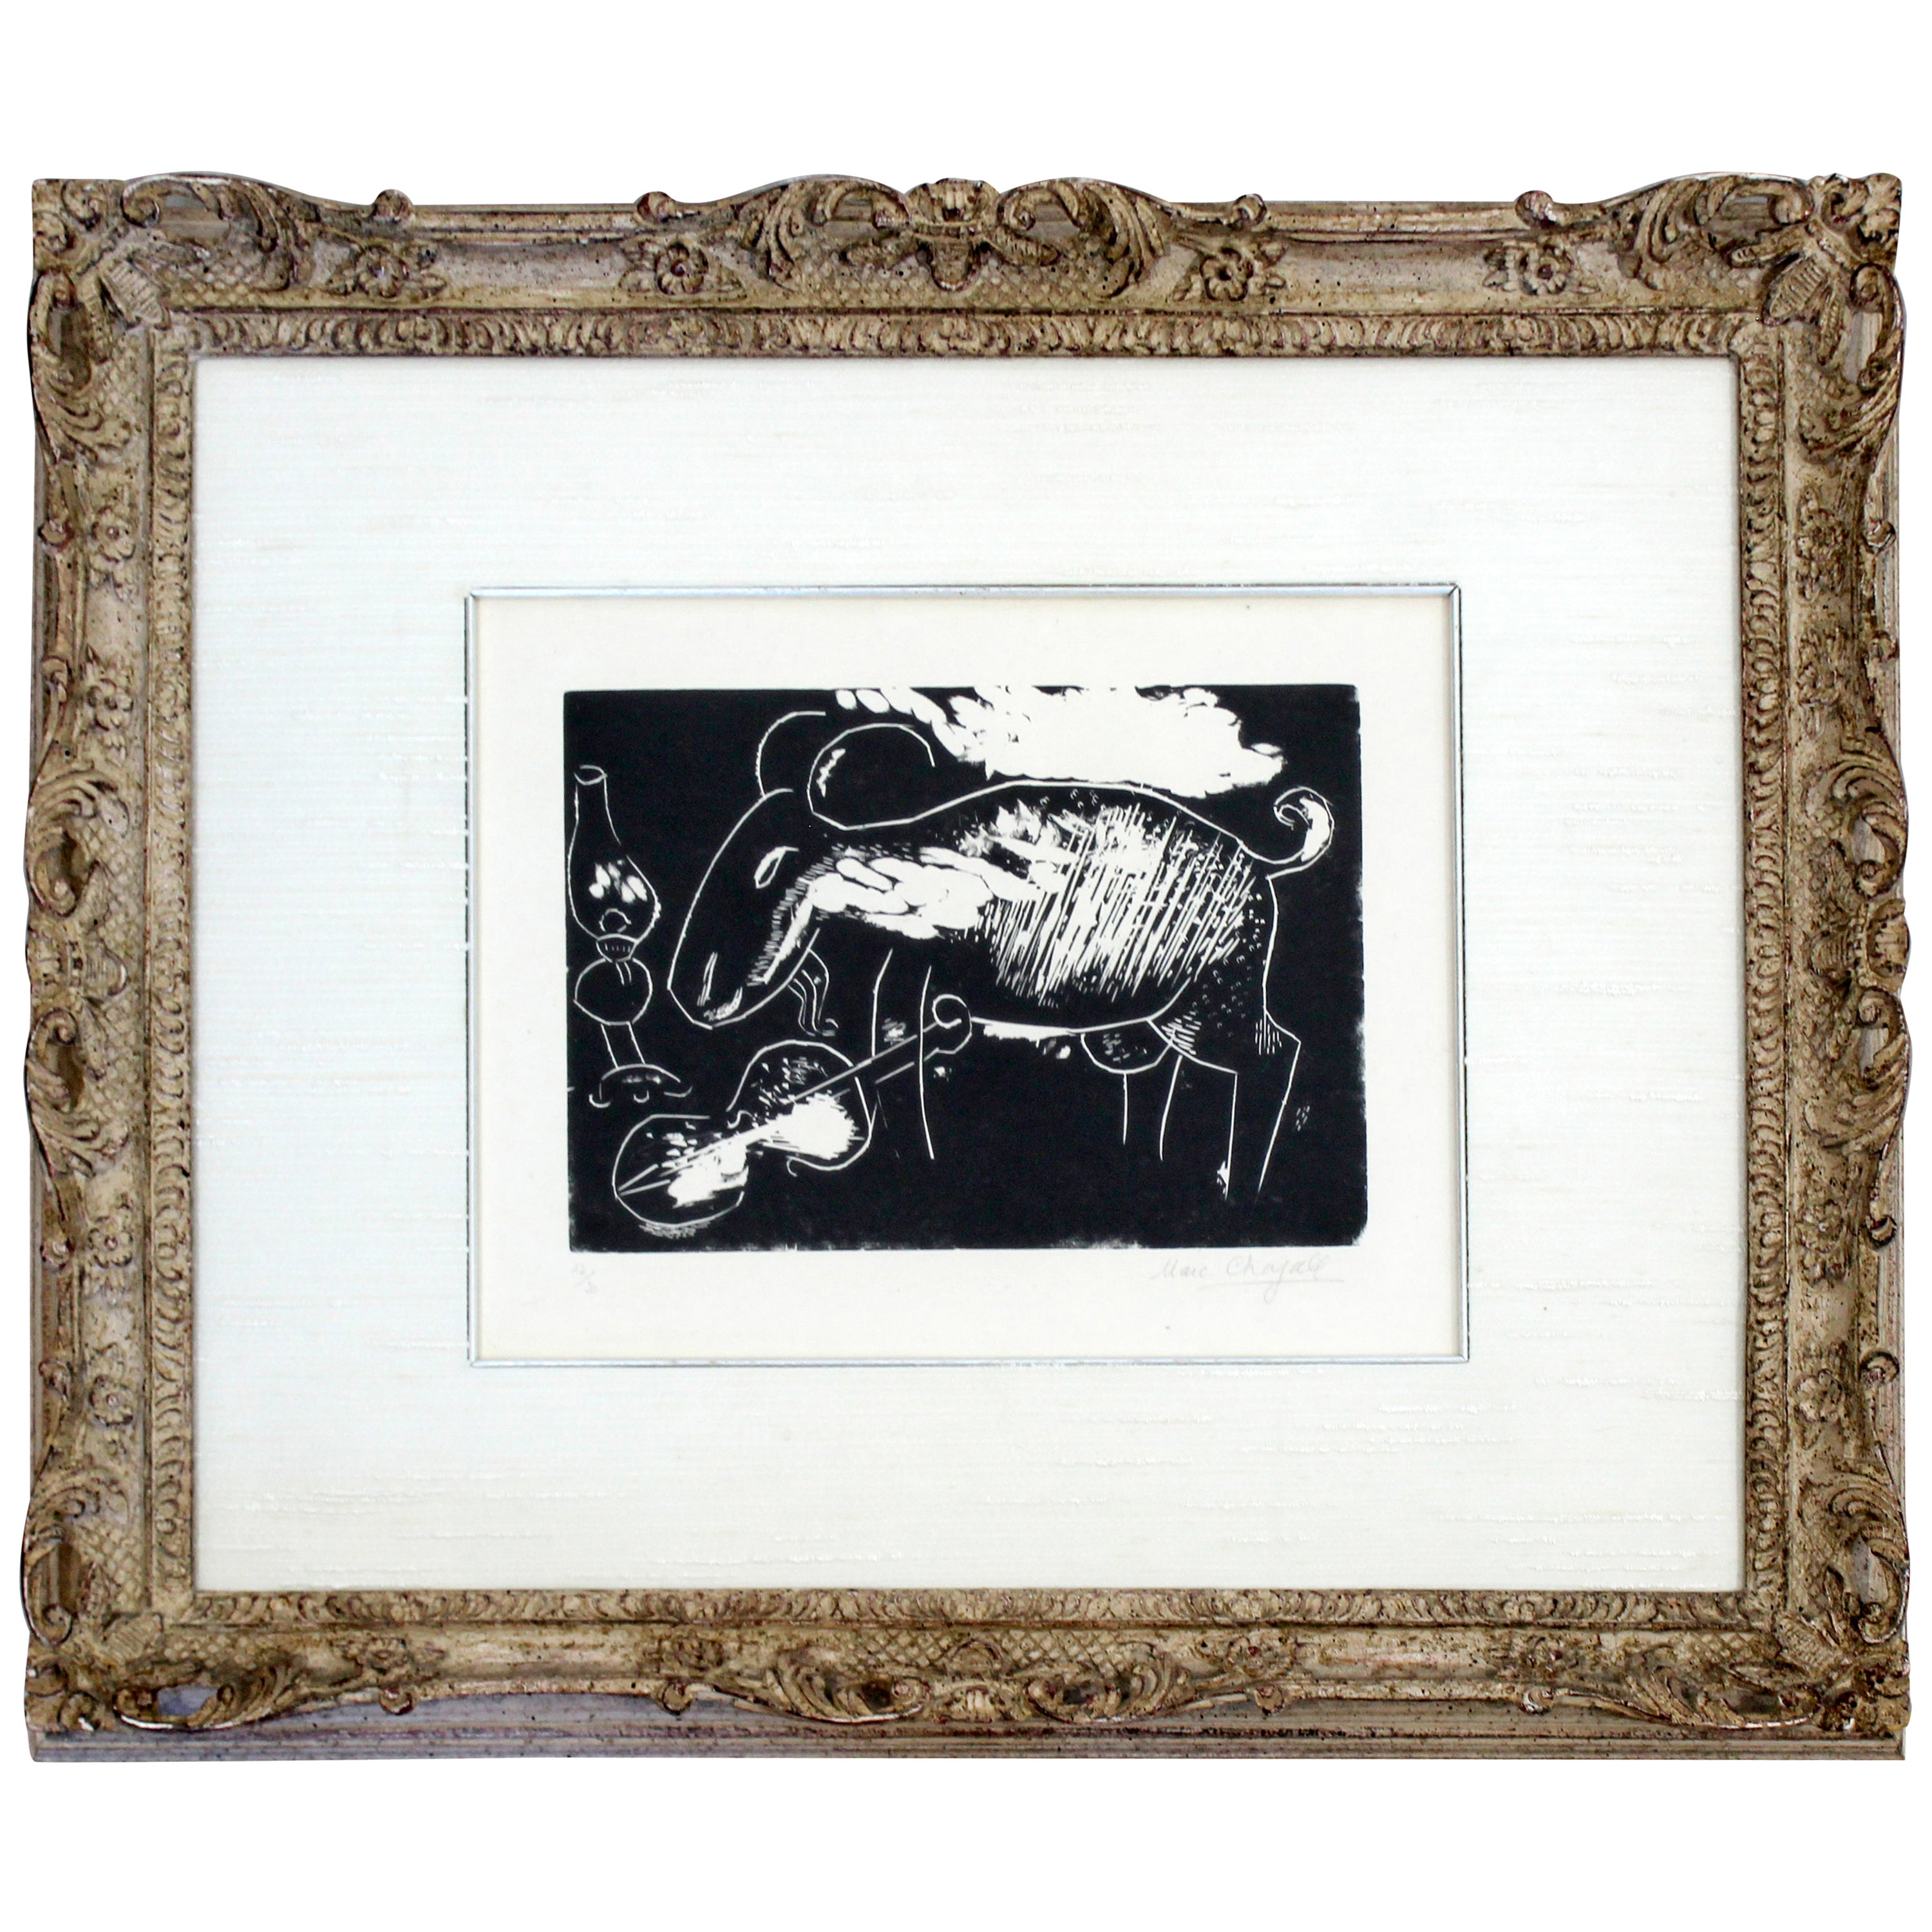 Ziege Mit Geige a Framed Woodcut by Marc Chagall Signed and Numbered 12/20